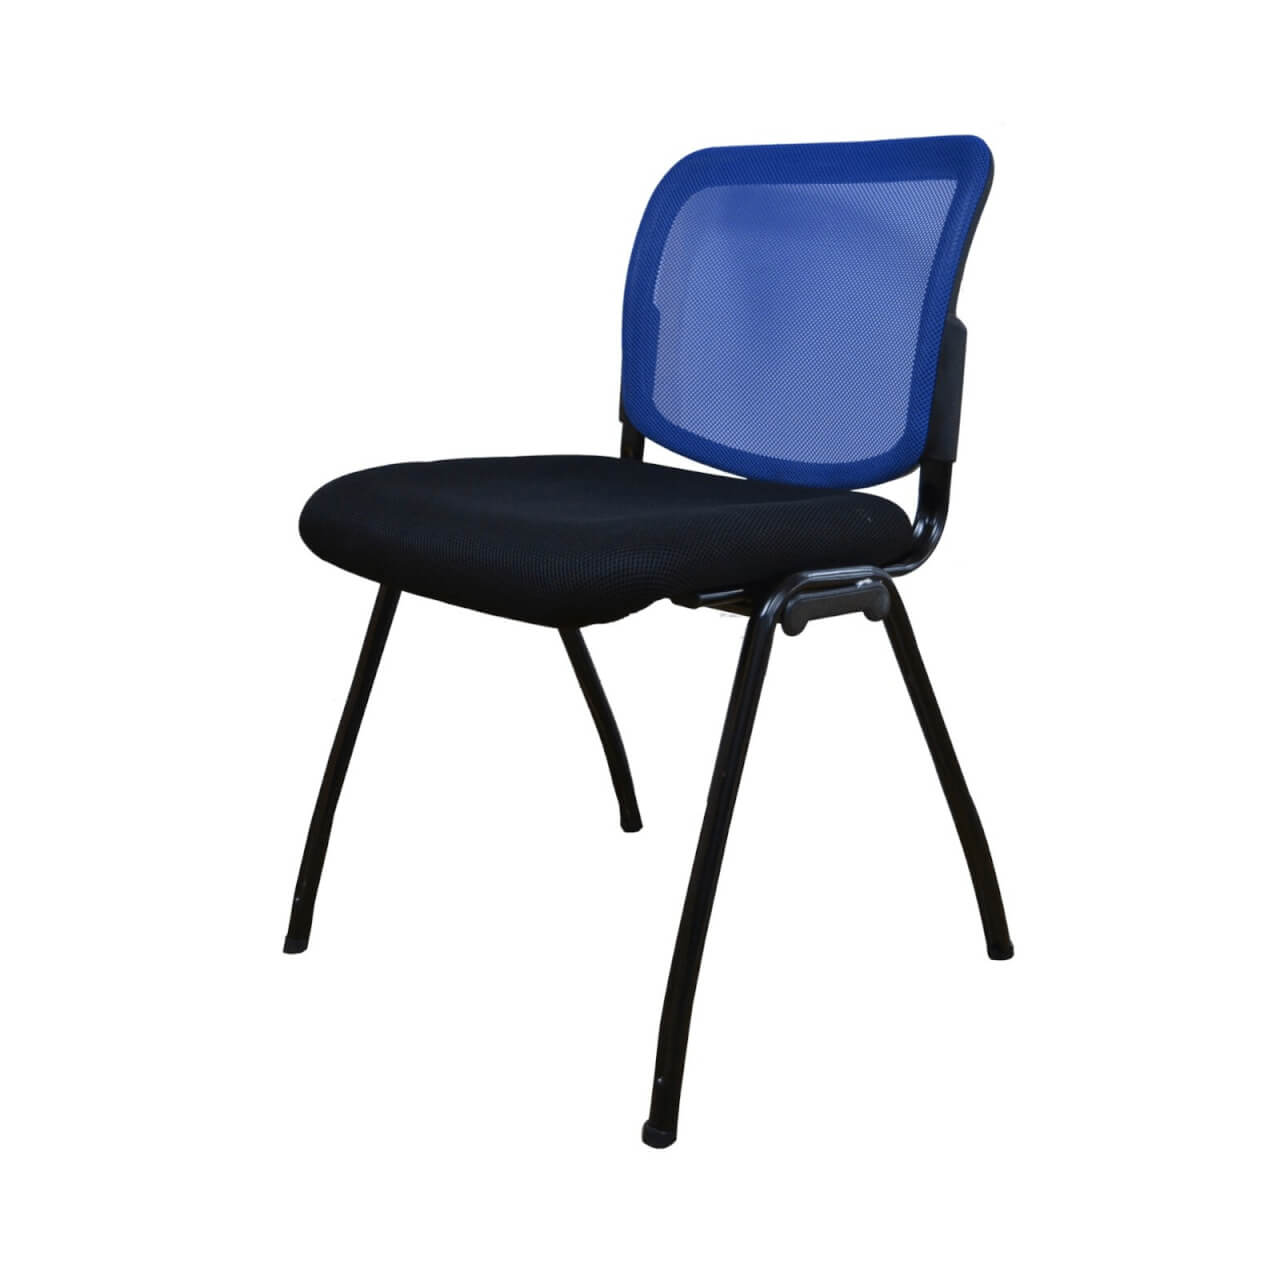 deluxe-vc-meshback-chair-blue